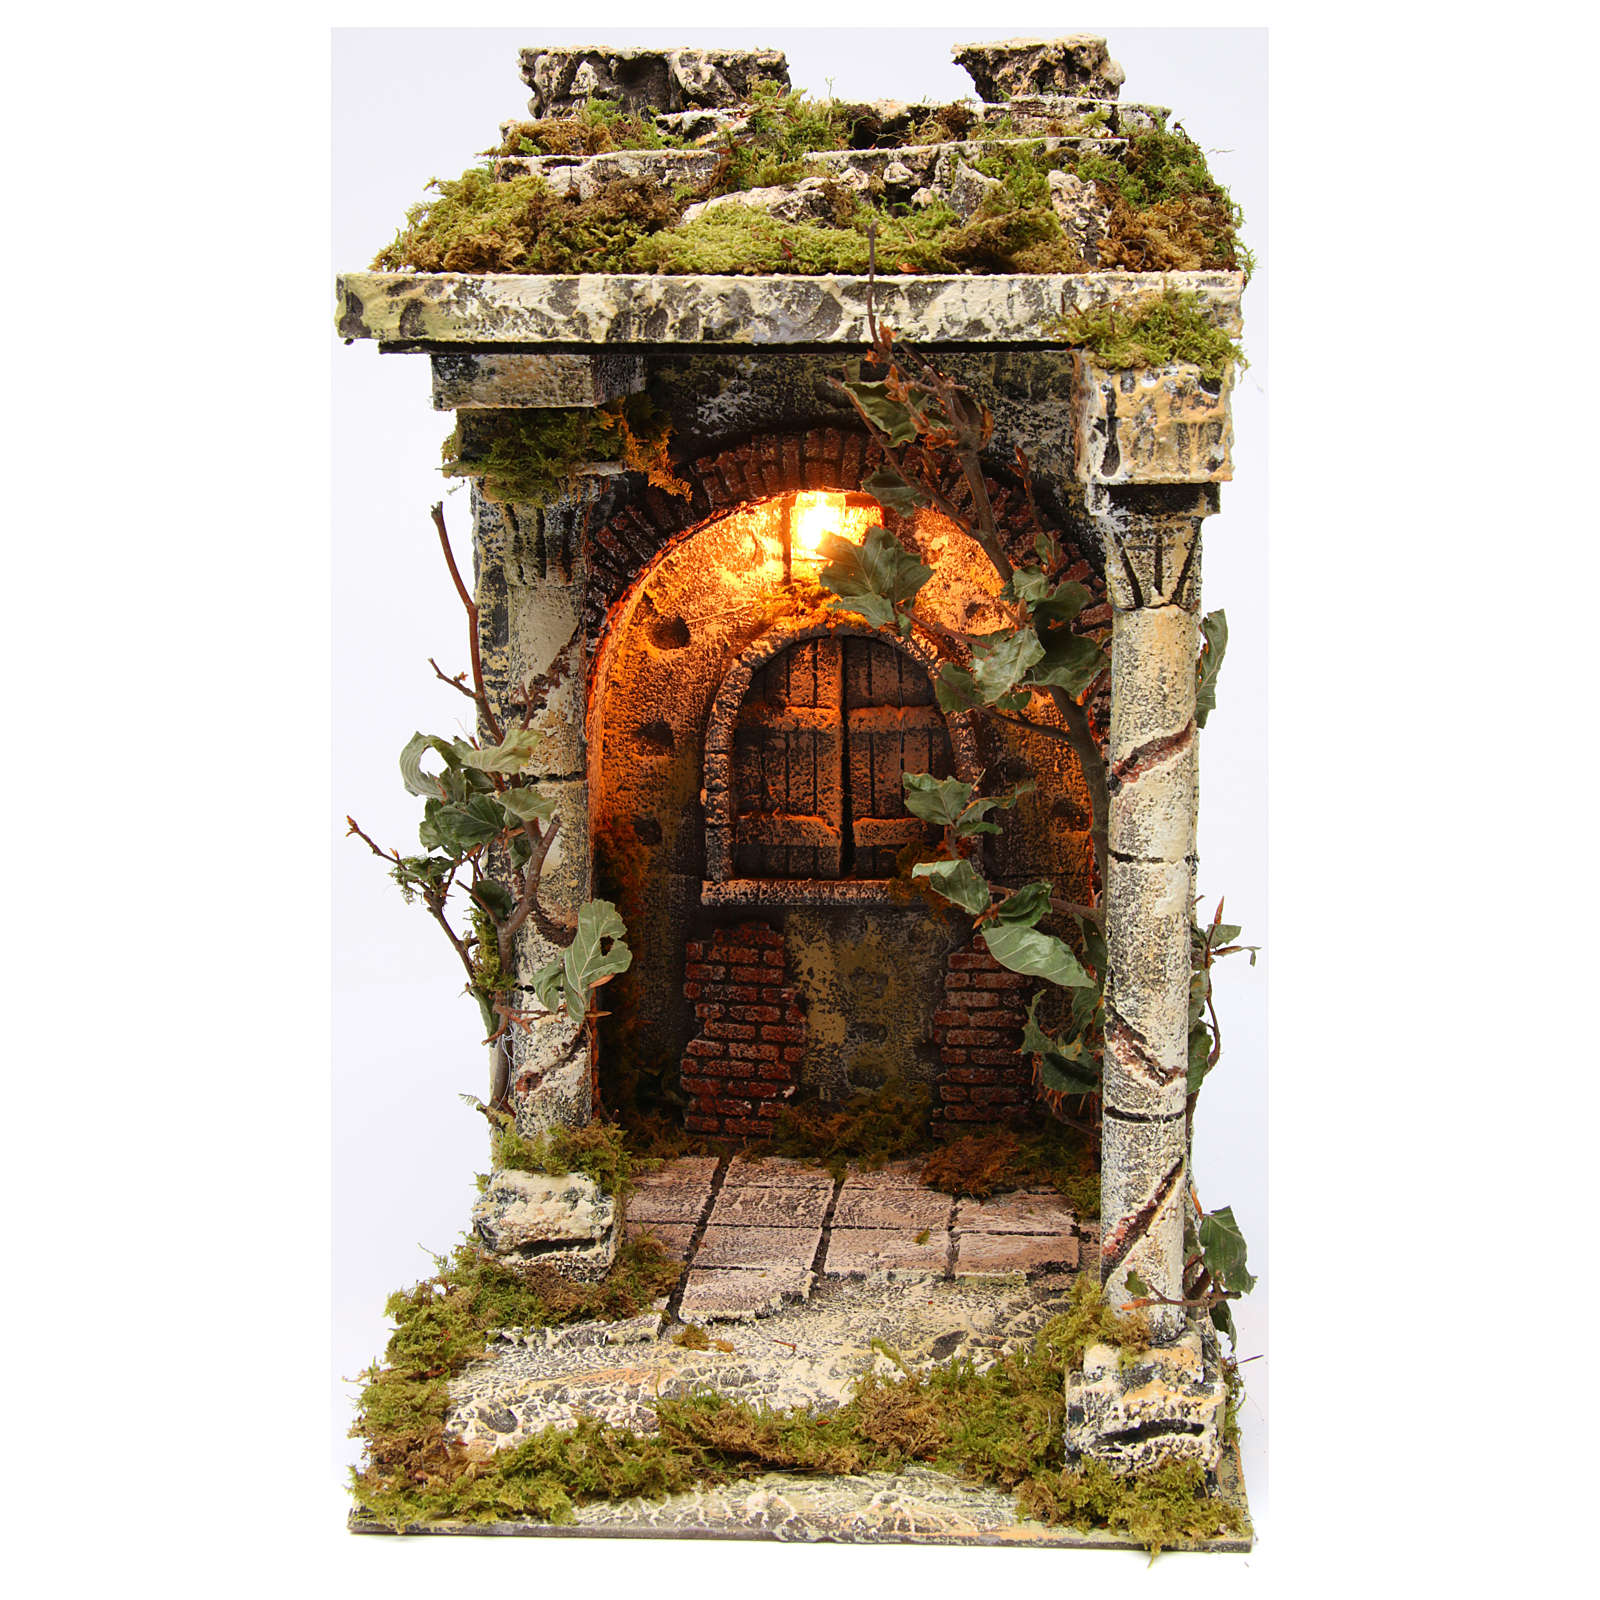 Old temple with pillars for Neapolitan Nativity scene 40x30x35 cm 4